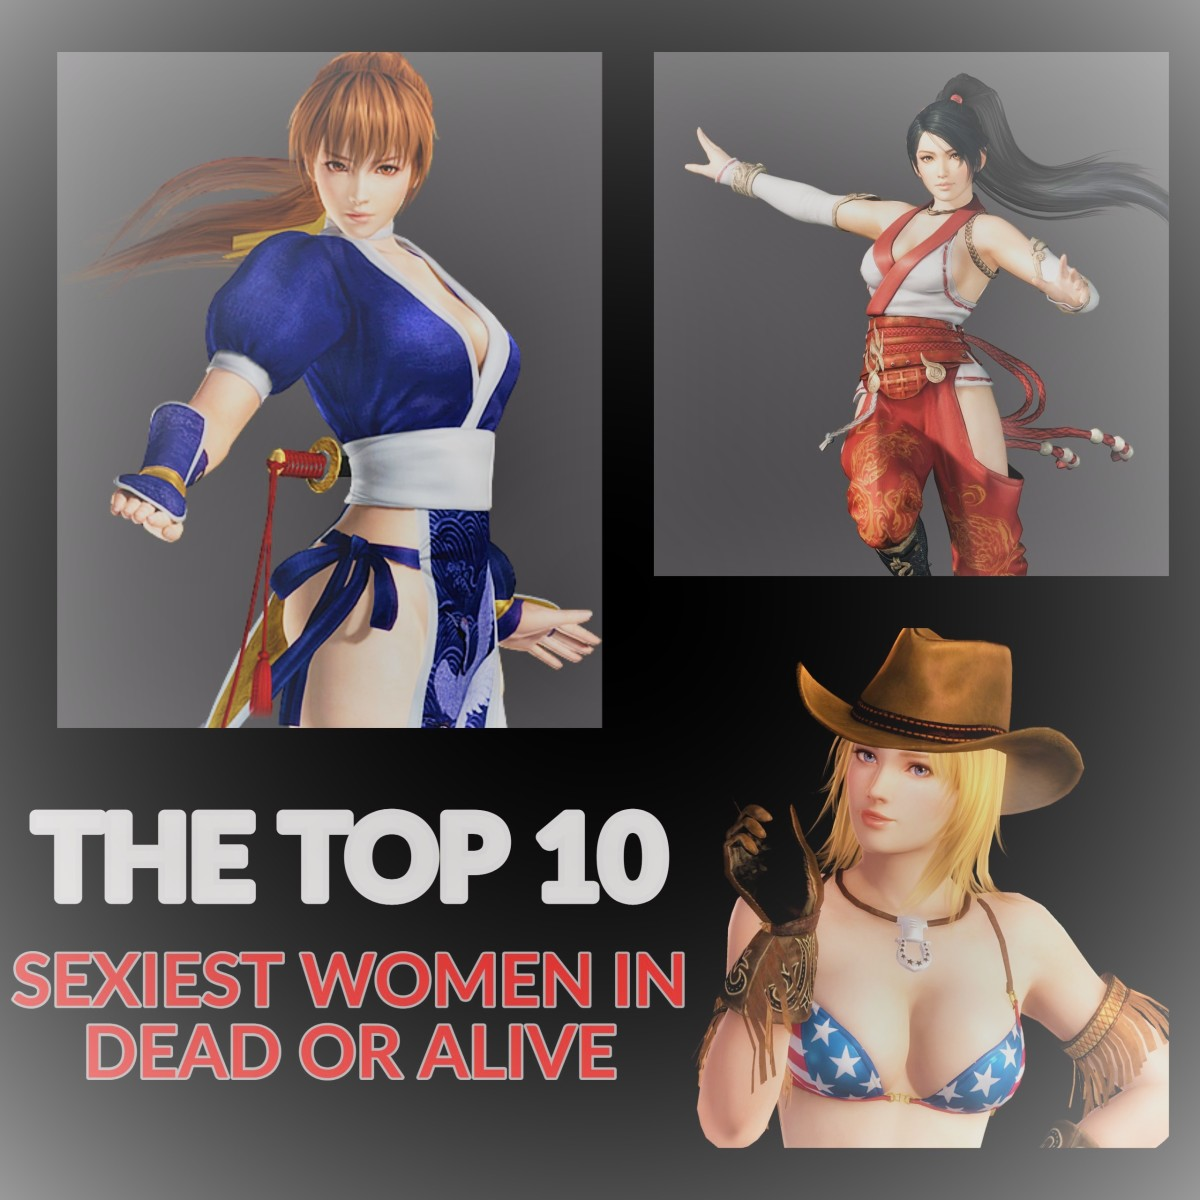 The Top 10 Sexiest Women in Dead or Alive